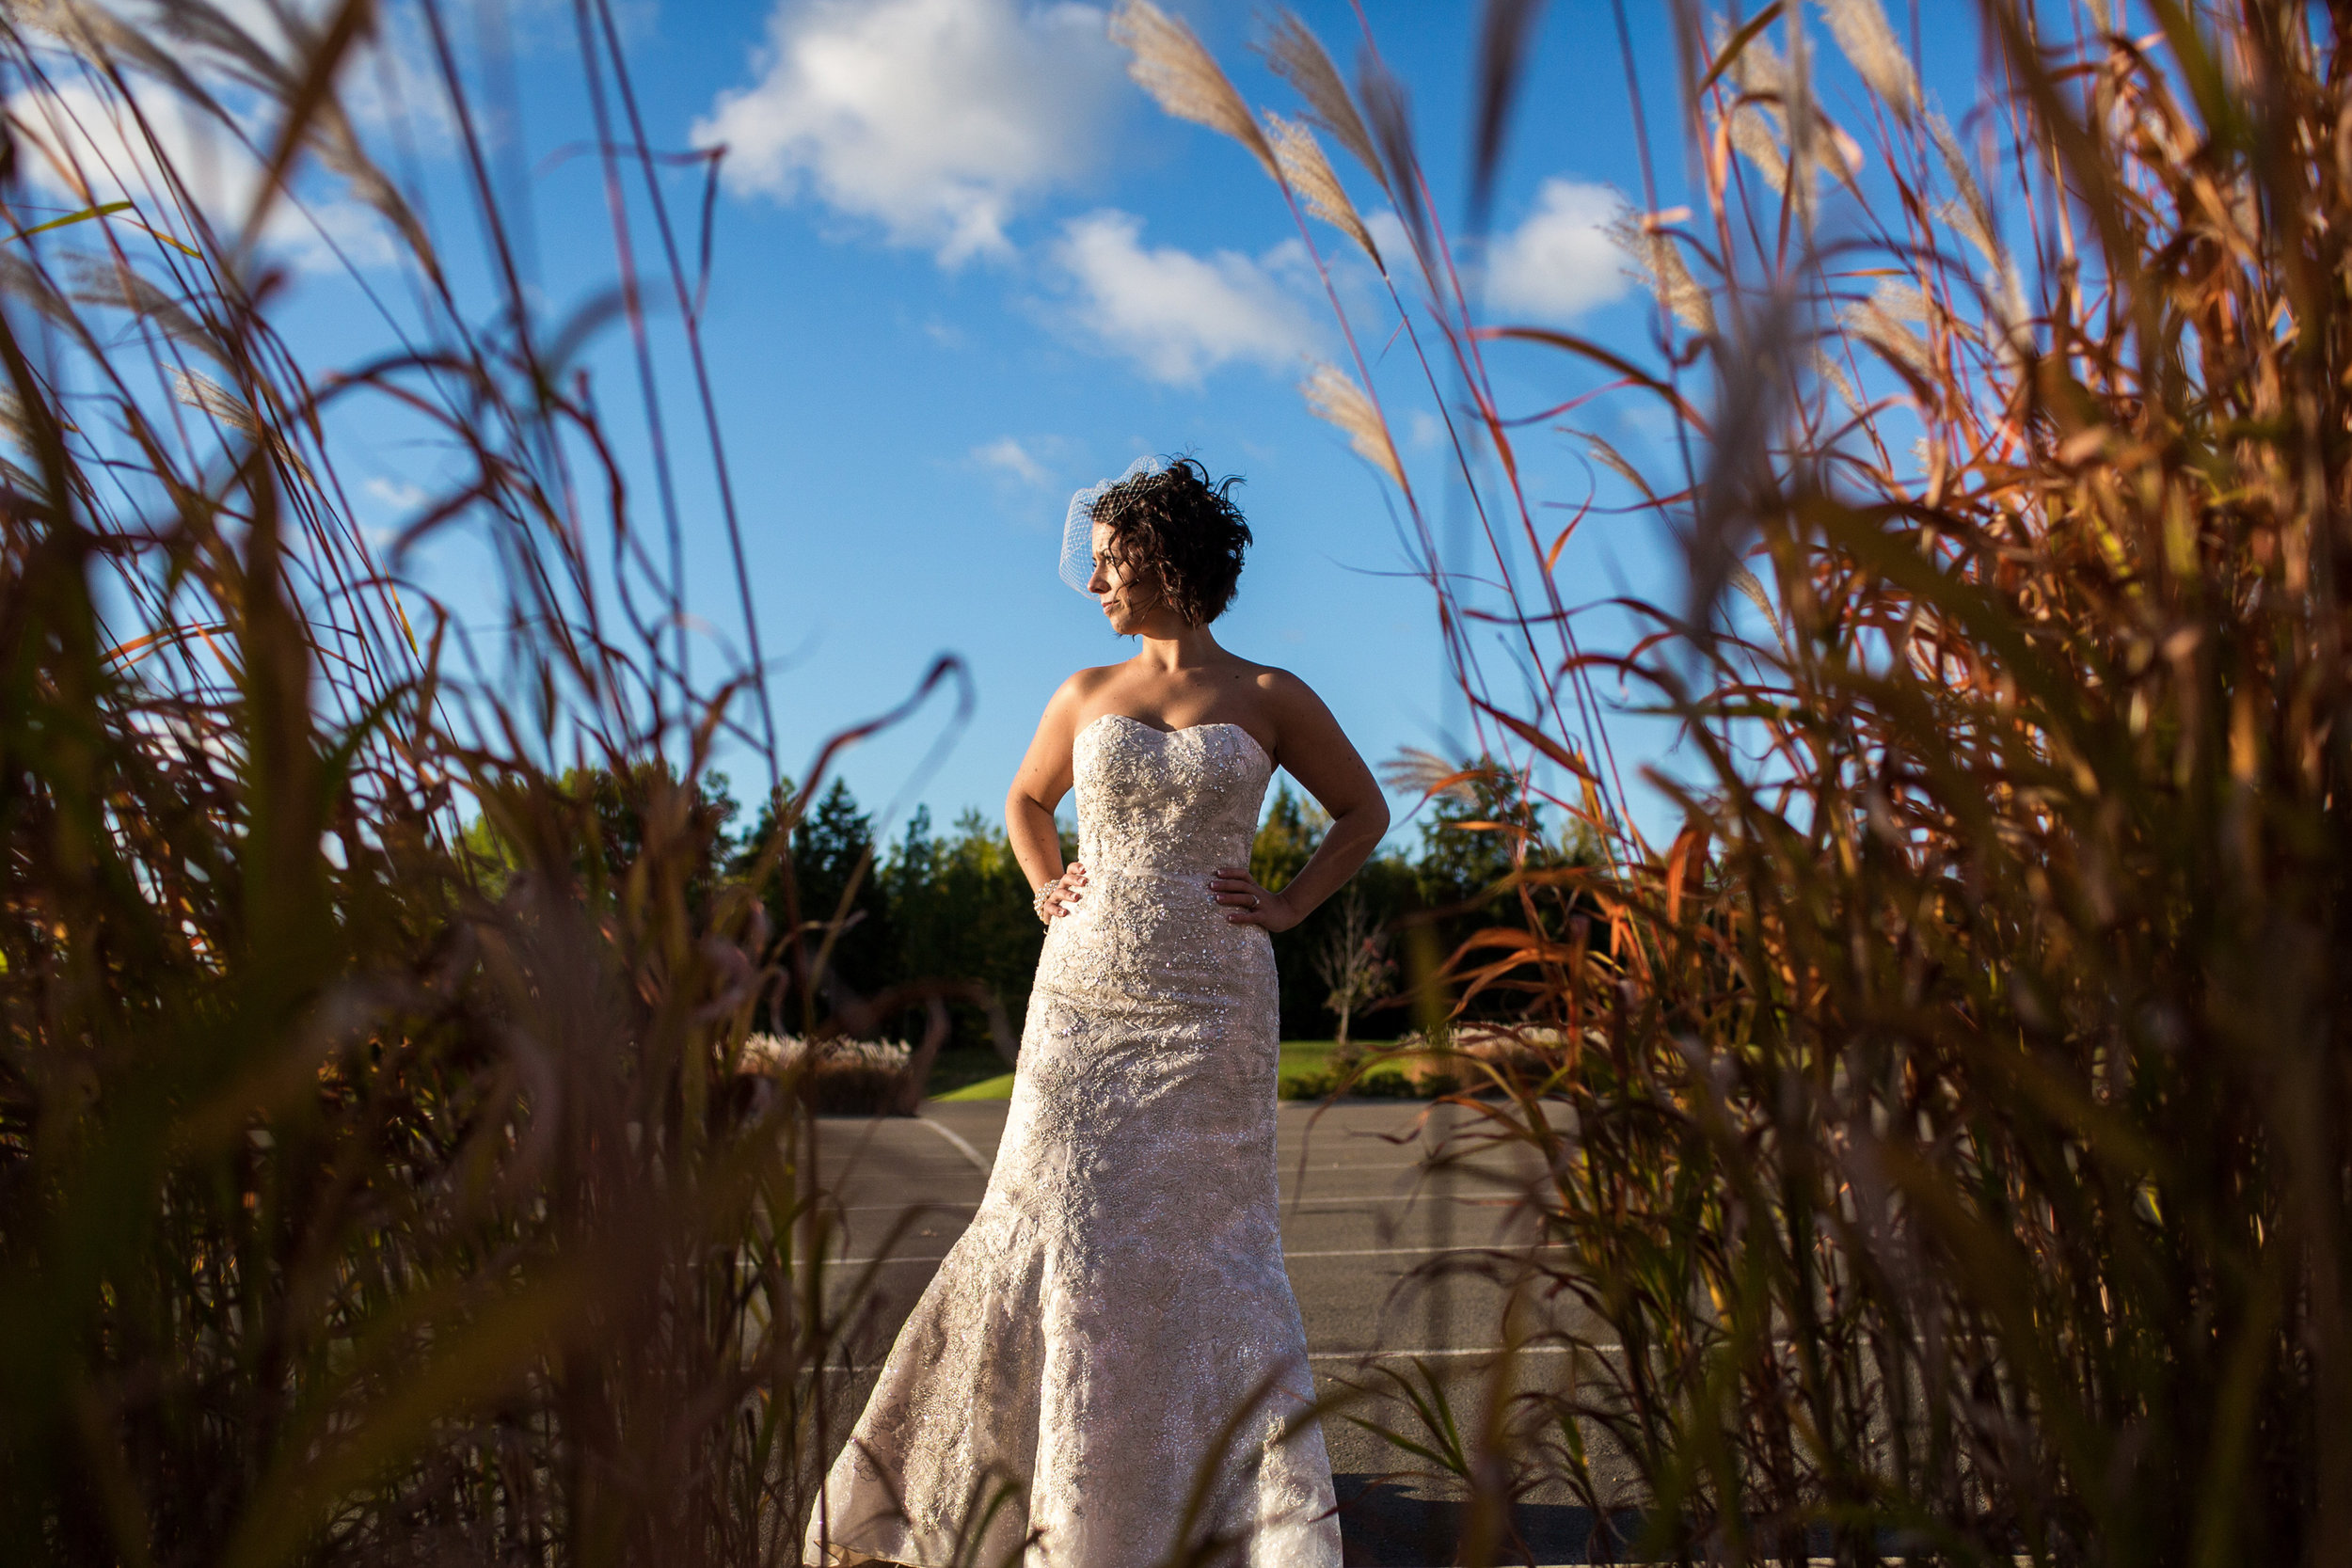 moncton_wedding_photographer_caro_photo-80.jpg